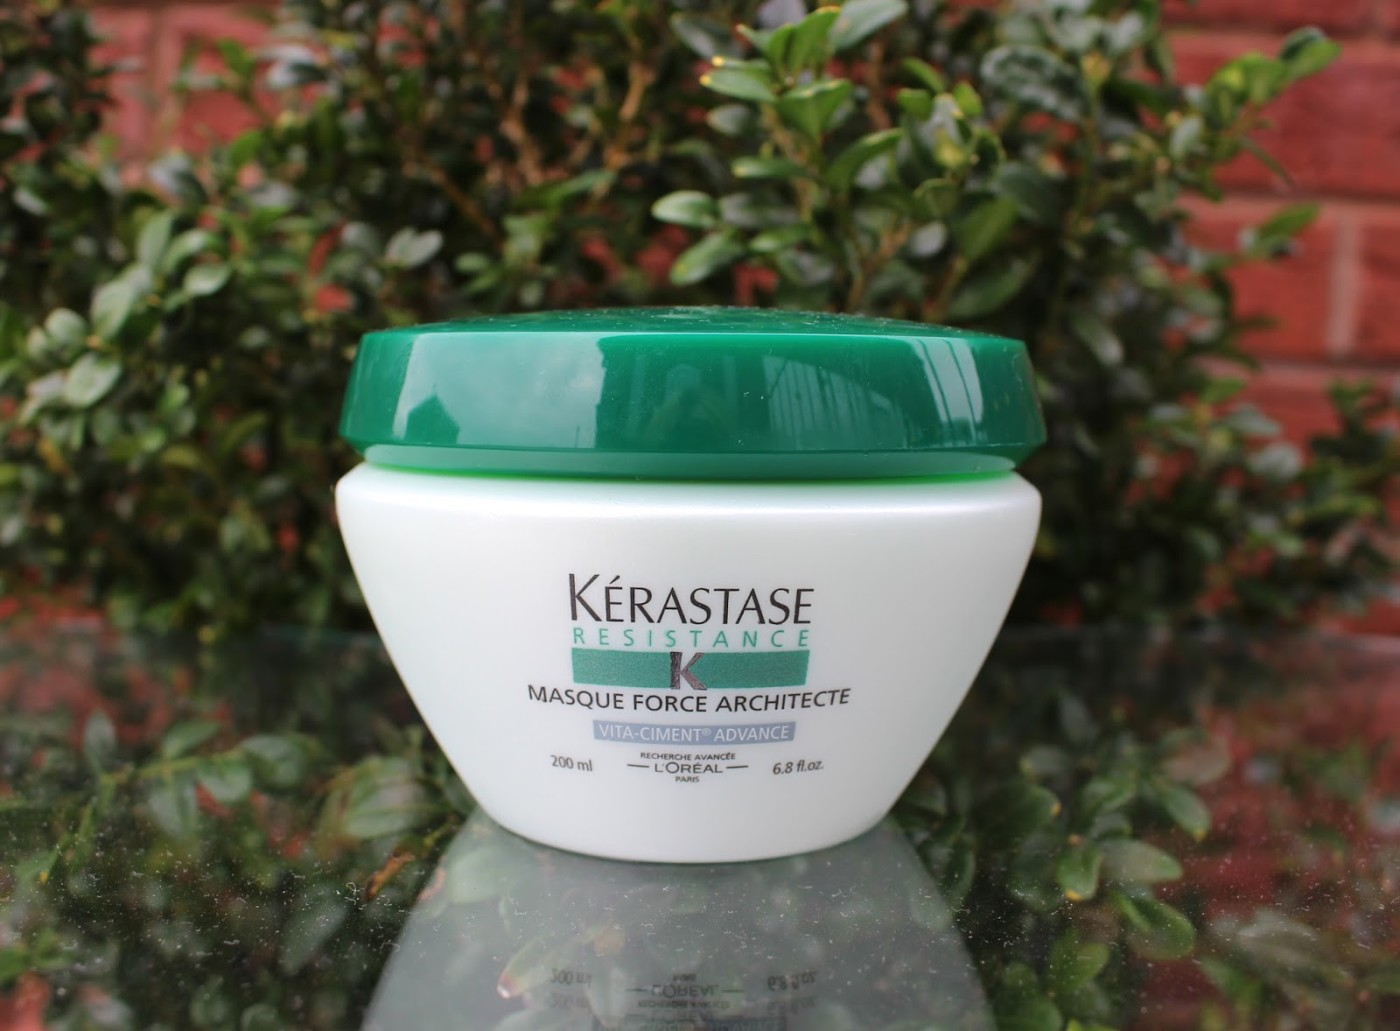 Kérastase Masque Force Architecte, Kérastase Hair Masque, Kérastase, Hair treatment, hair treatment masque, damaged hair treatment, review, through chelsea's eyes,